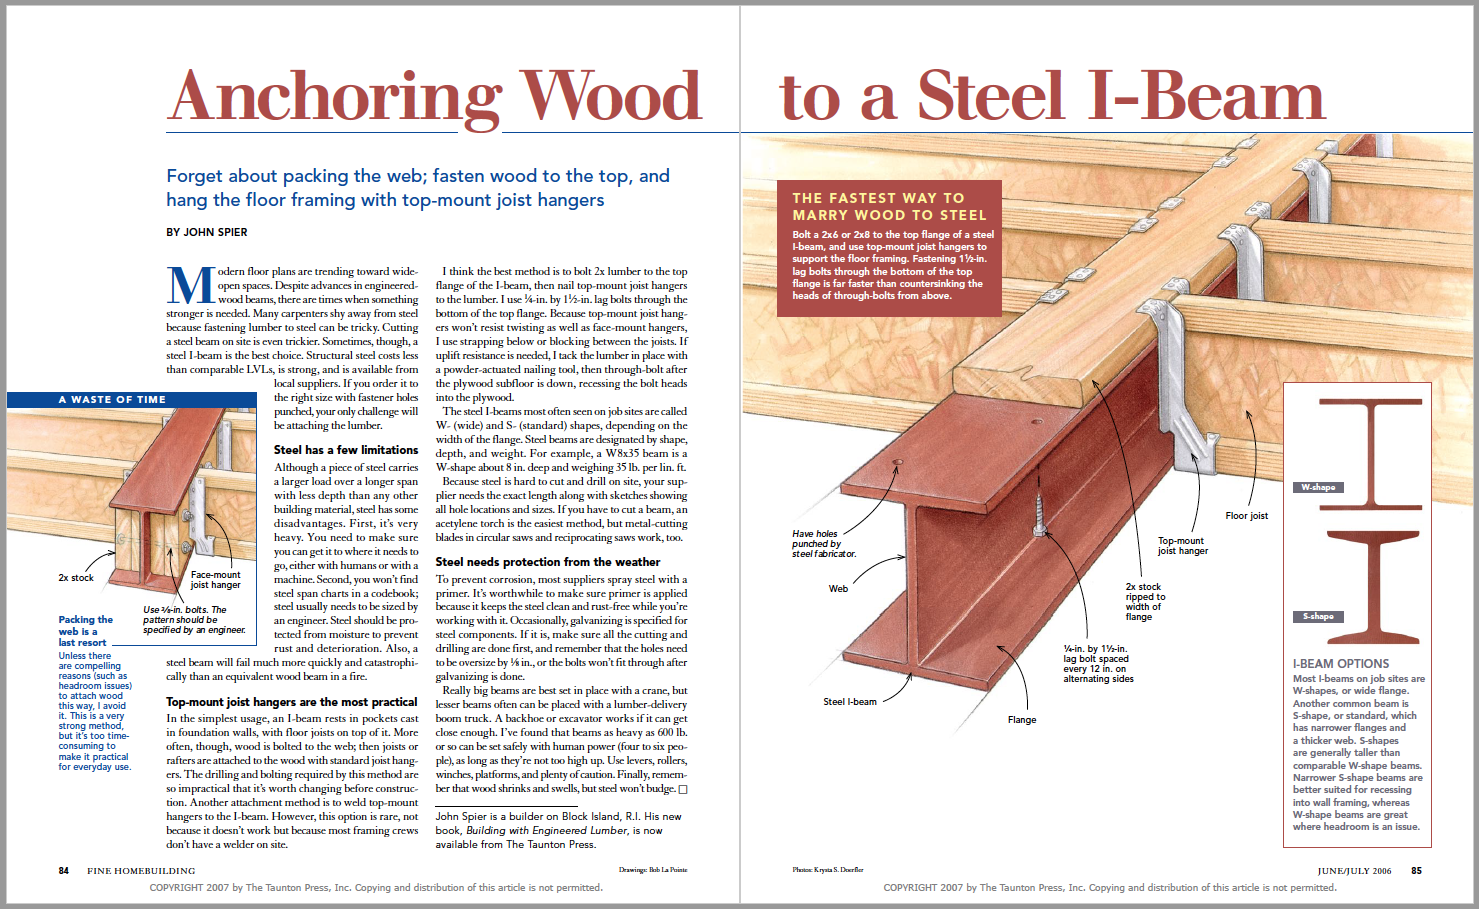 Anchoring Wood to a Steel I-Beam spread image